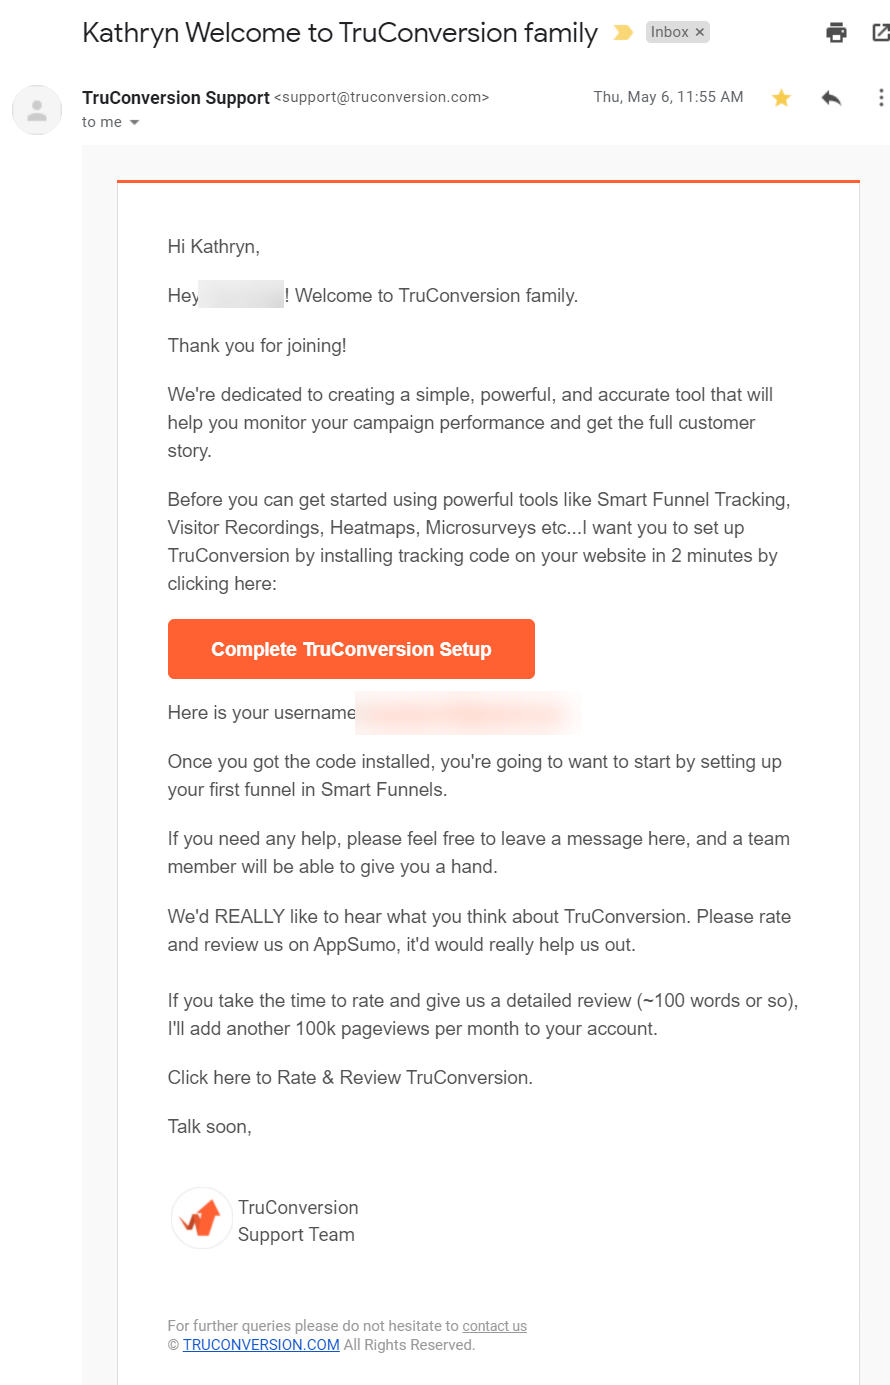 Screenshot of the TruConversion welcome email